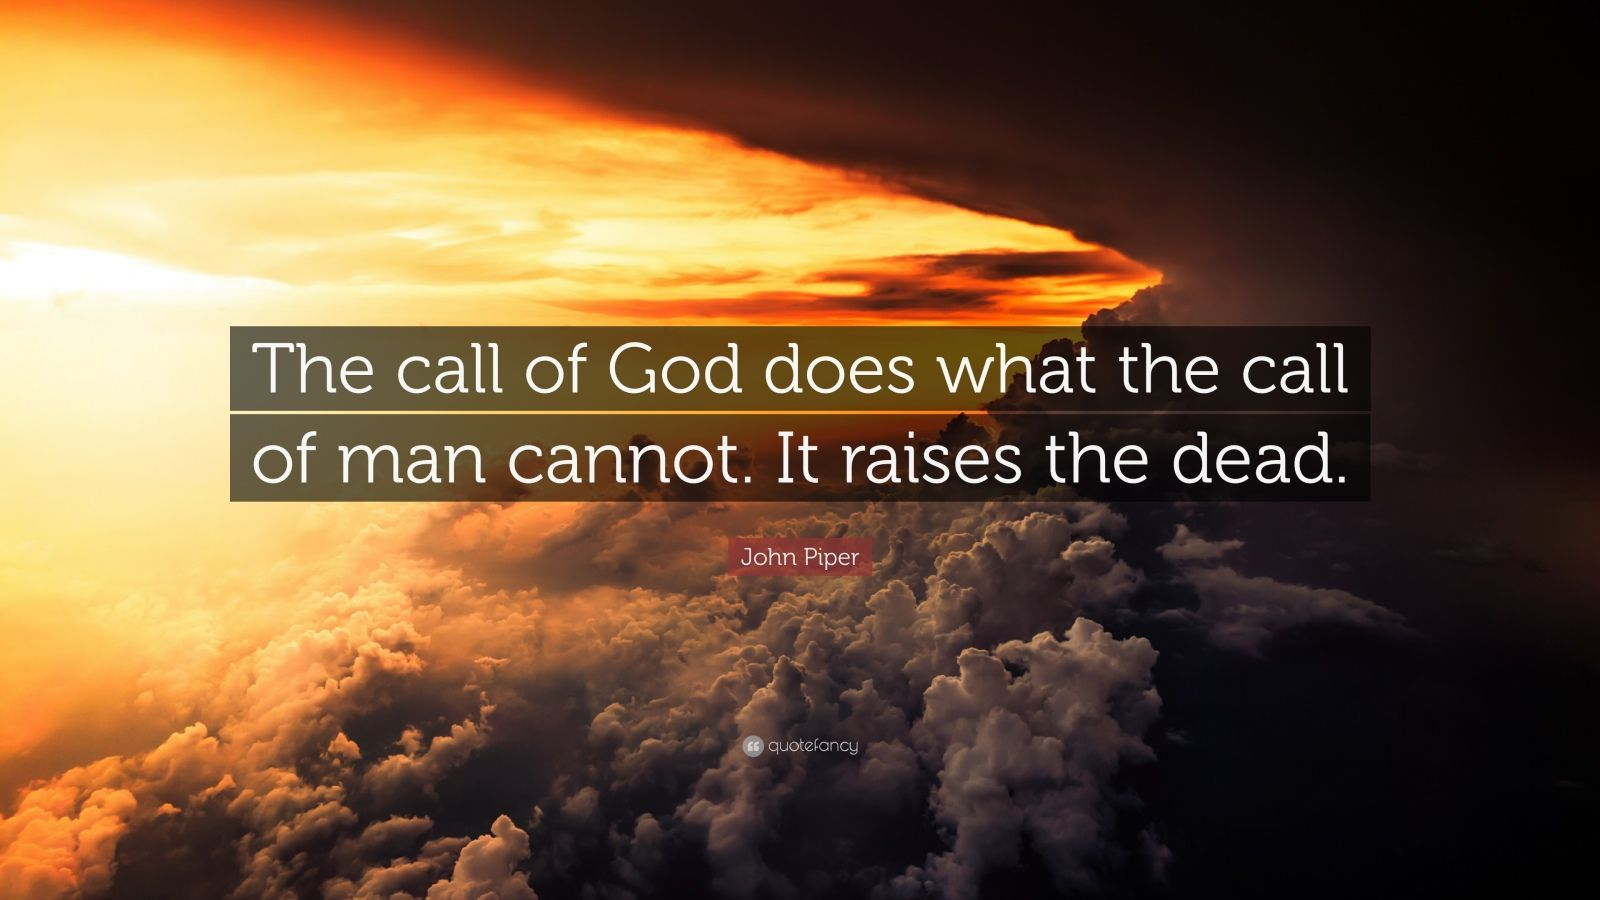 """John Piper Quote: """"The call of God does what the call of man cannot. It raises the dead."""""""